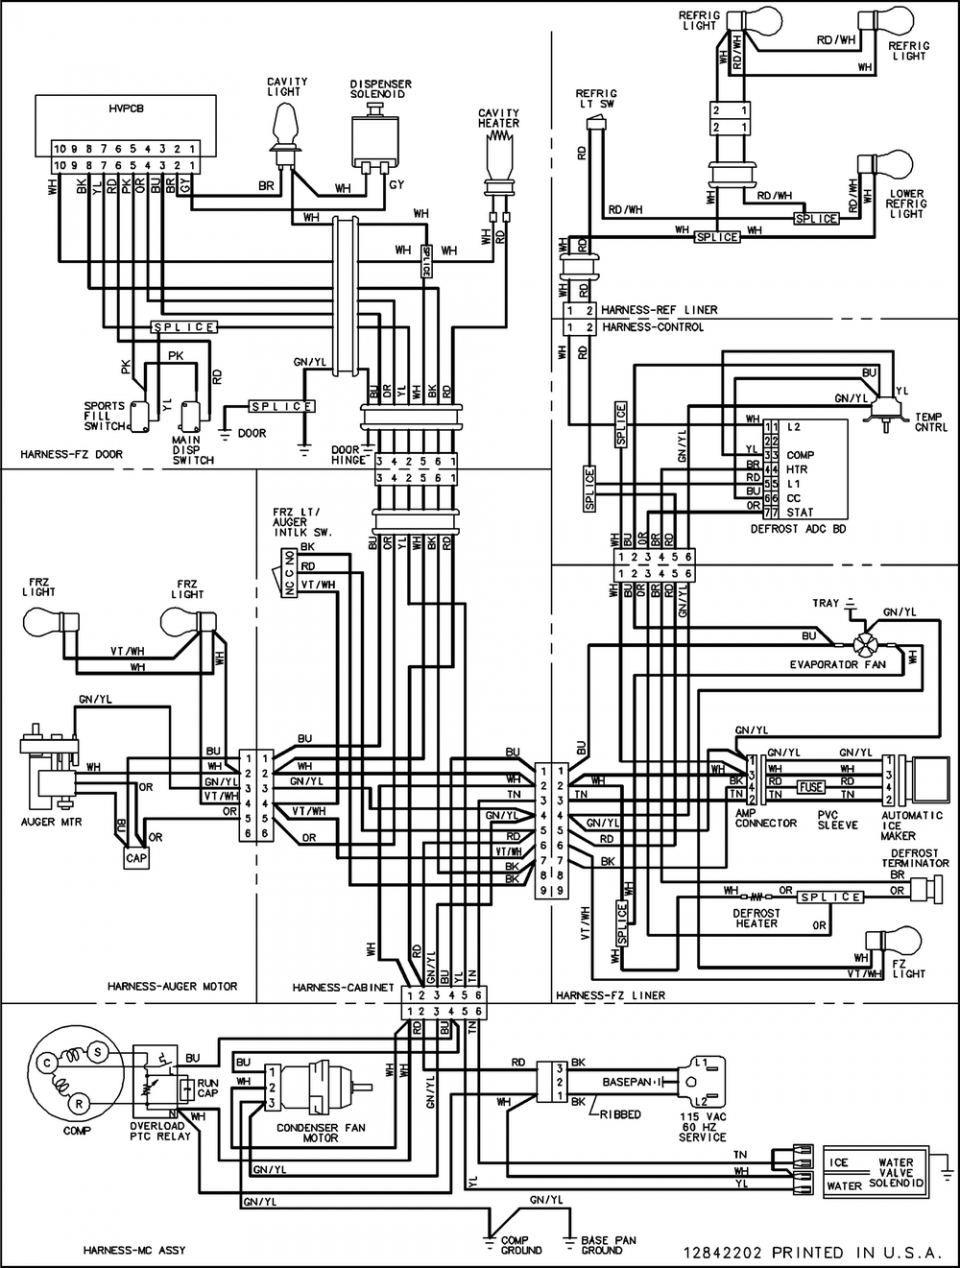 wiring diagram for ice maker